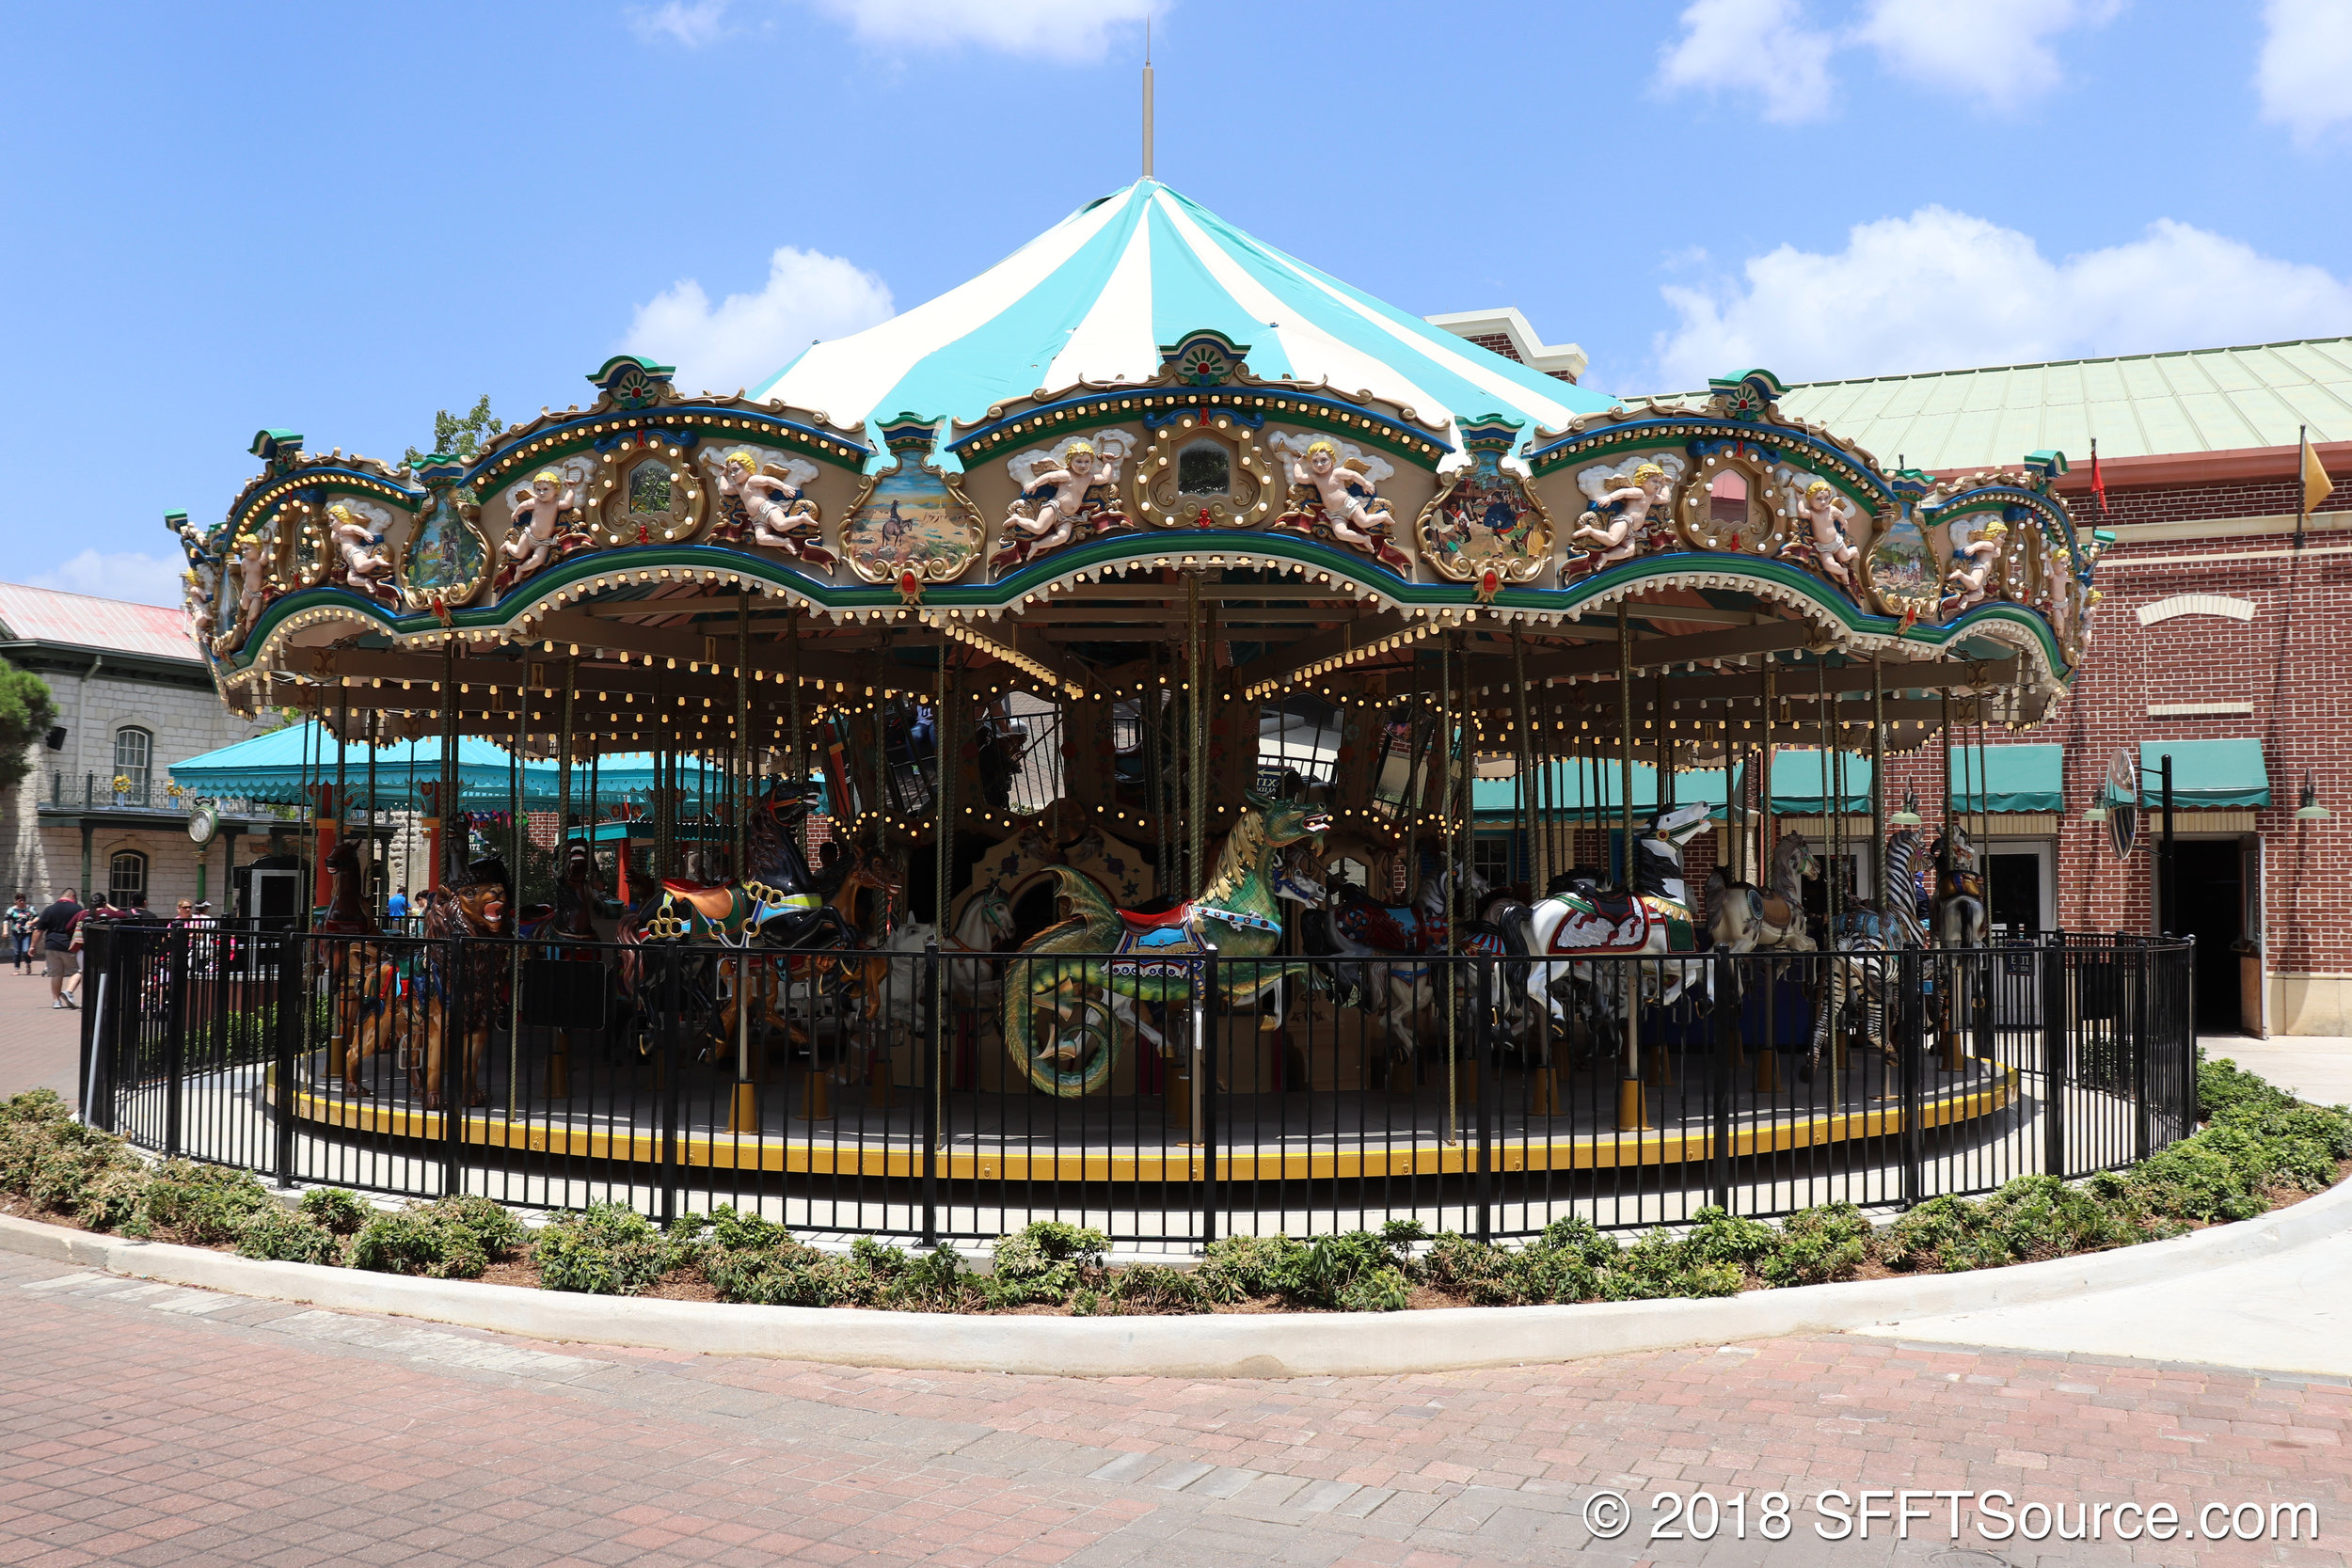 An overall look at Grand Carousel.